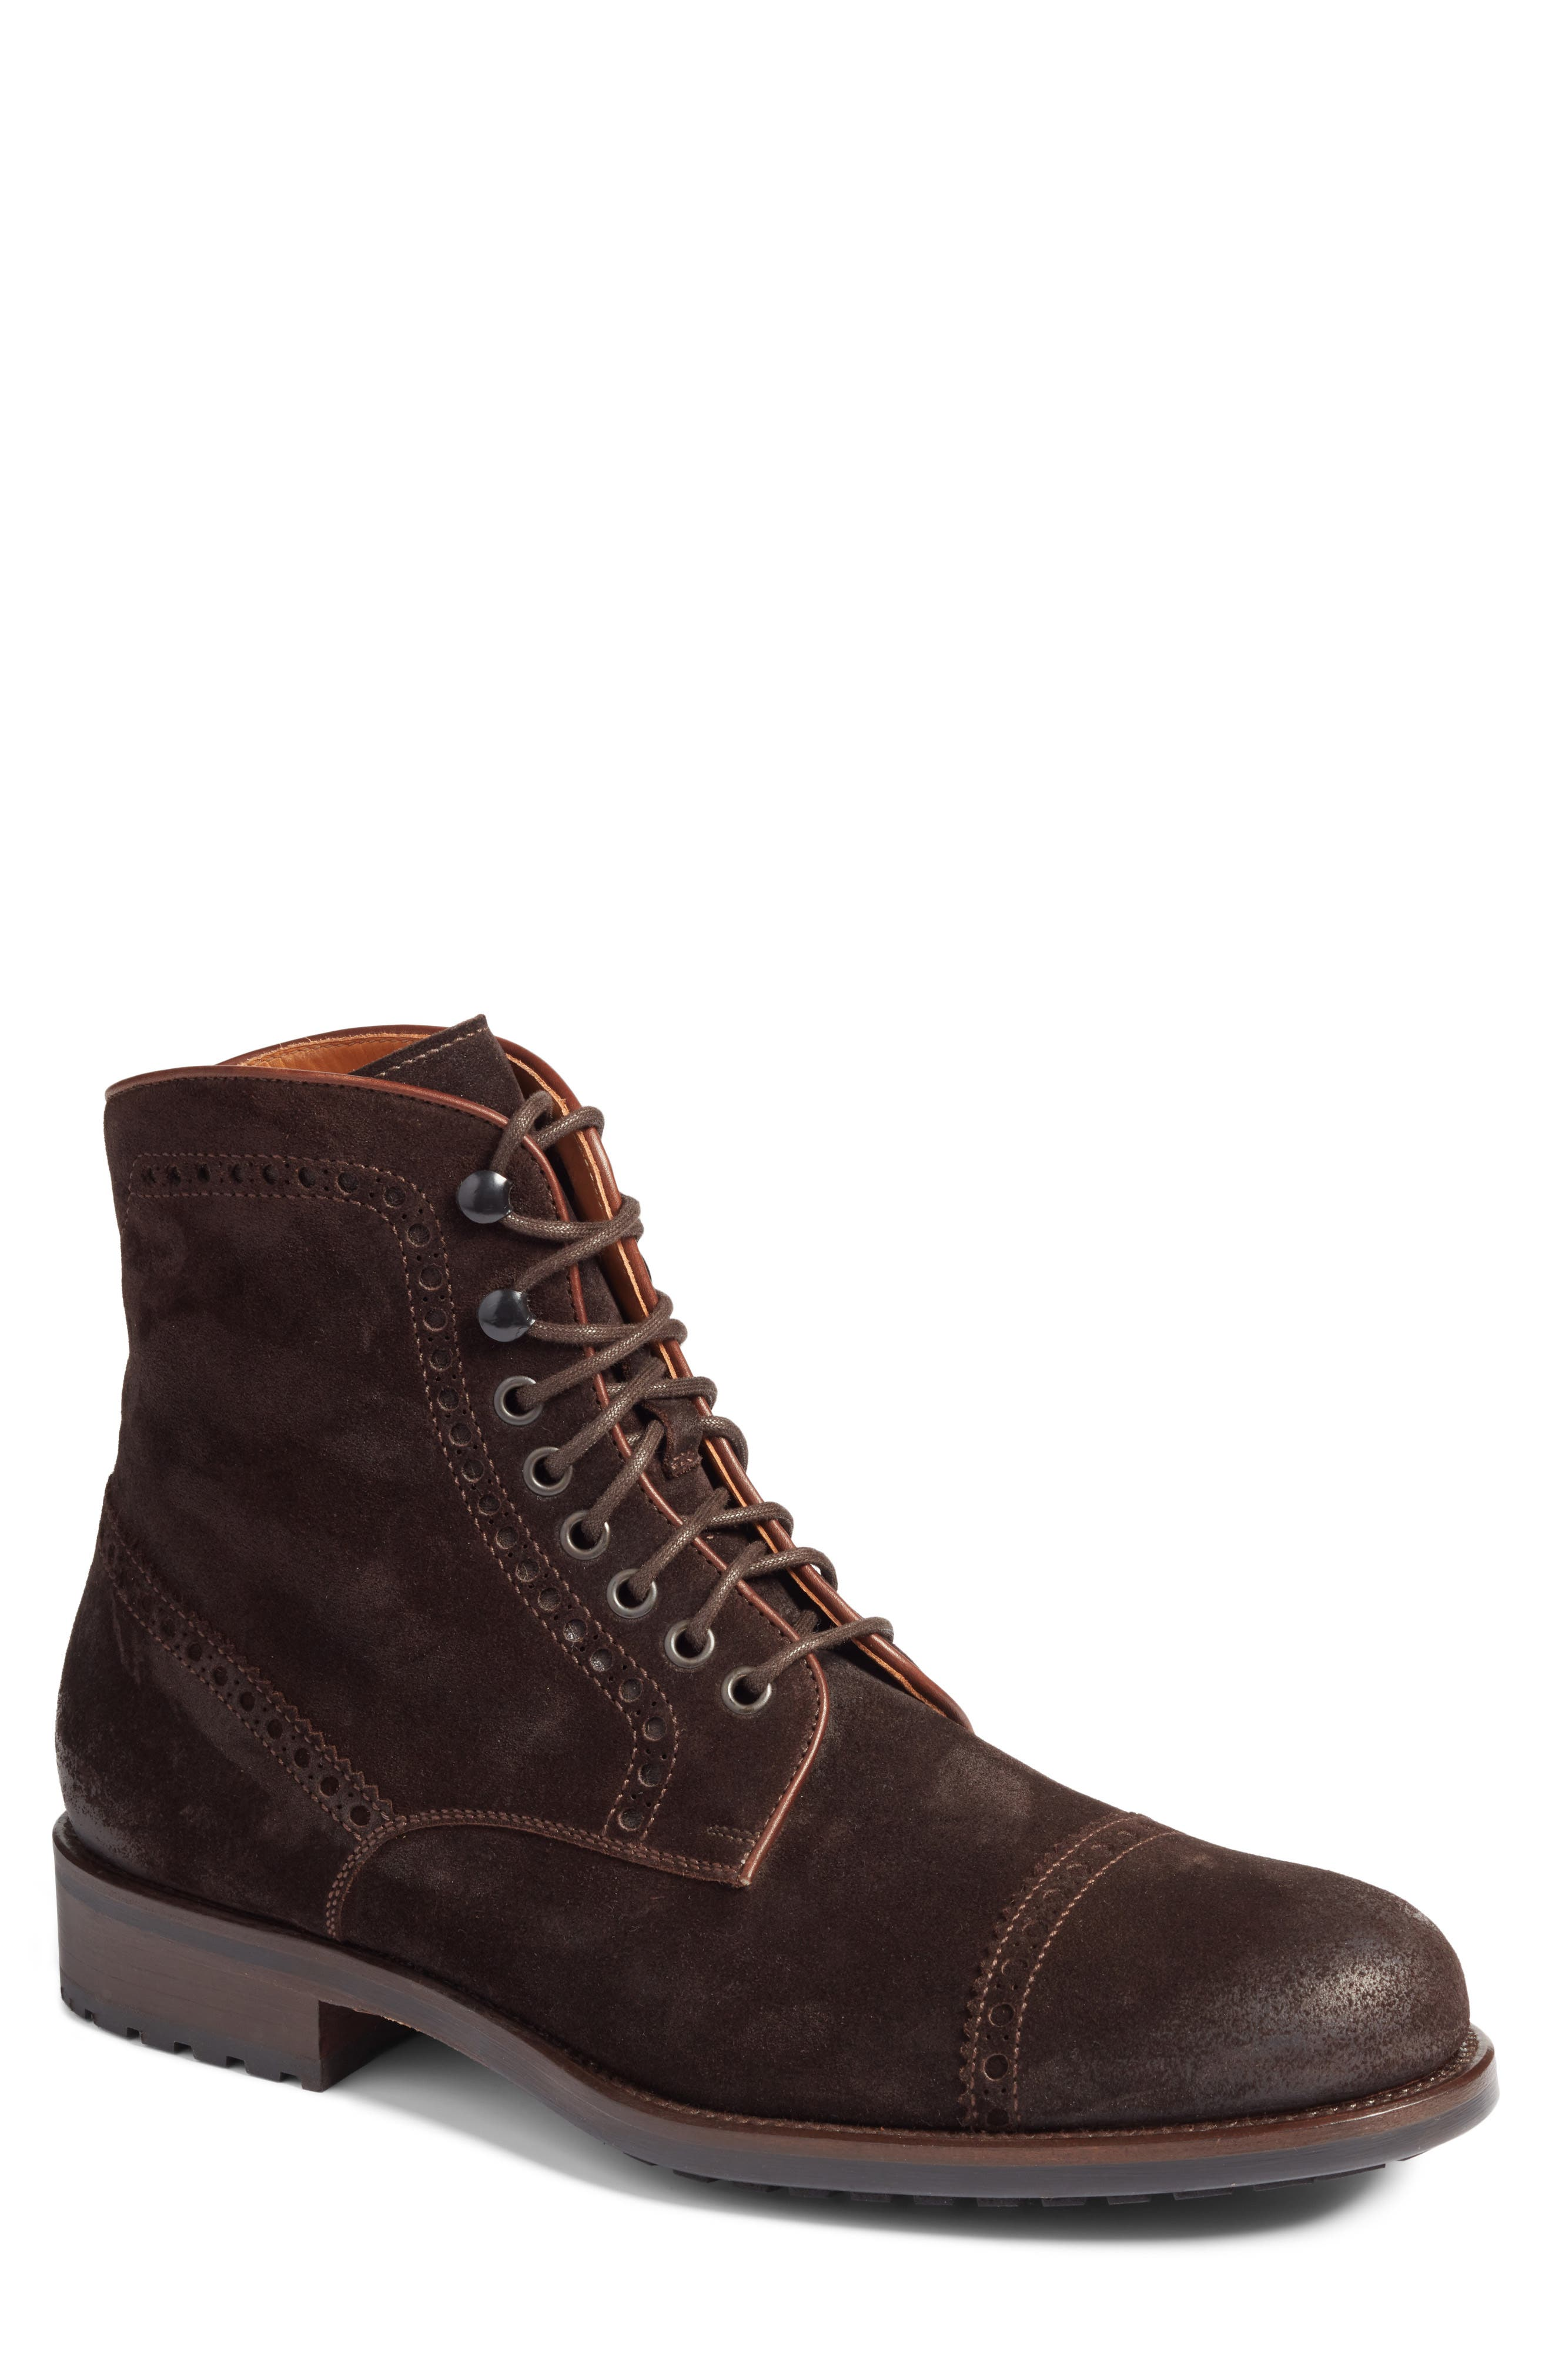 Palmer Cap Toe Boot,                             Main thumbnail 1, color,                             Brown Suede